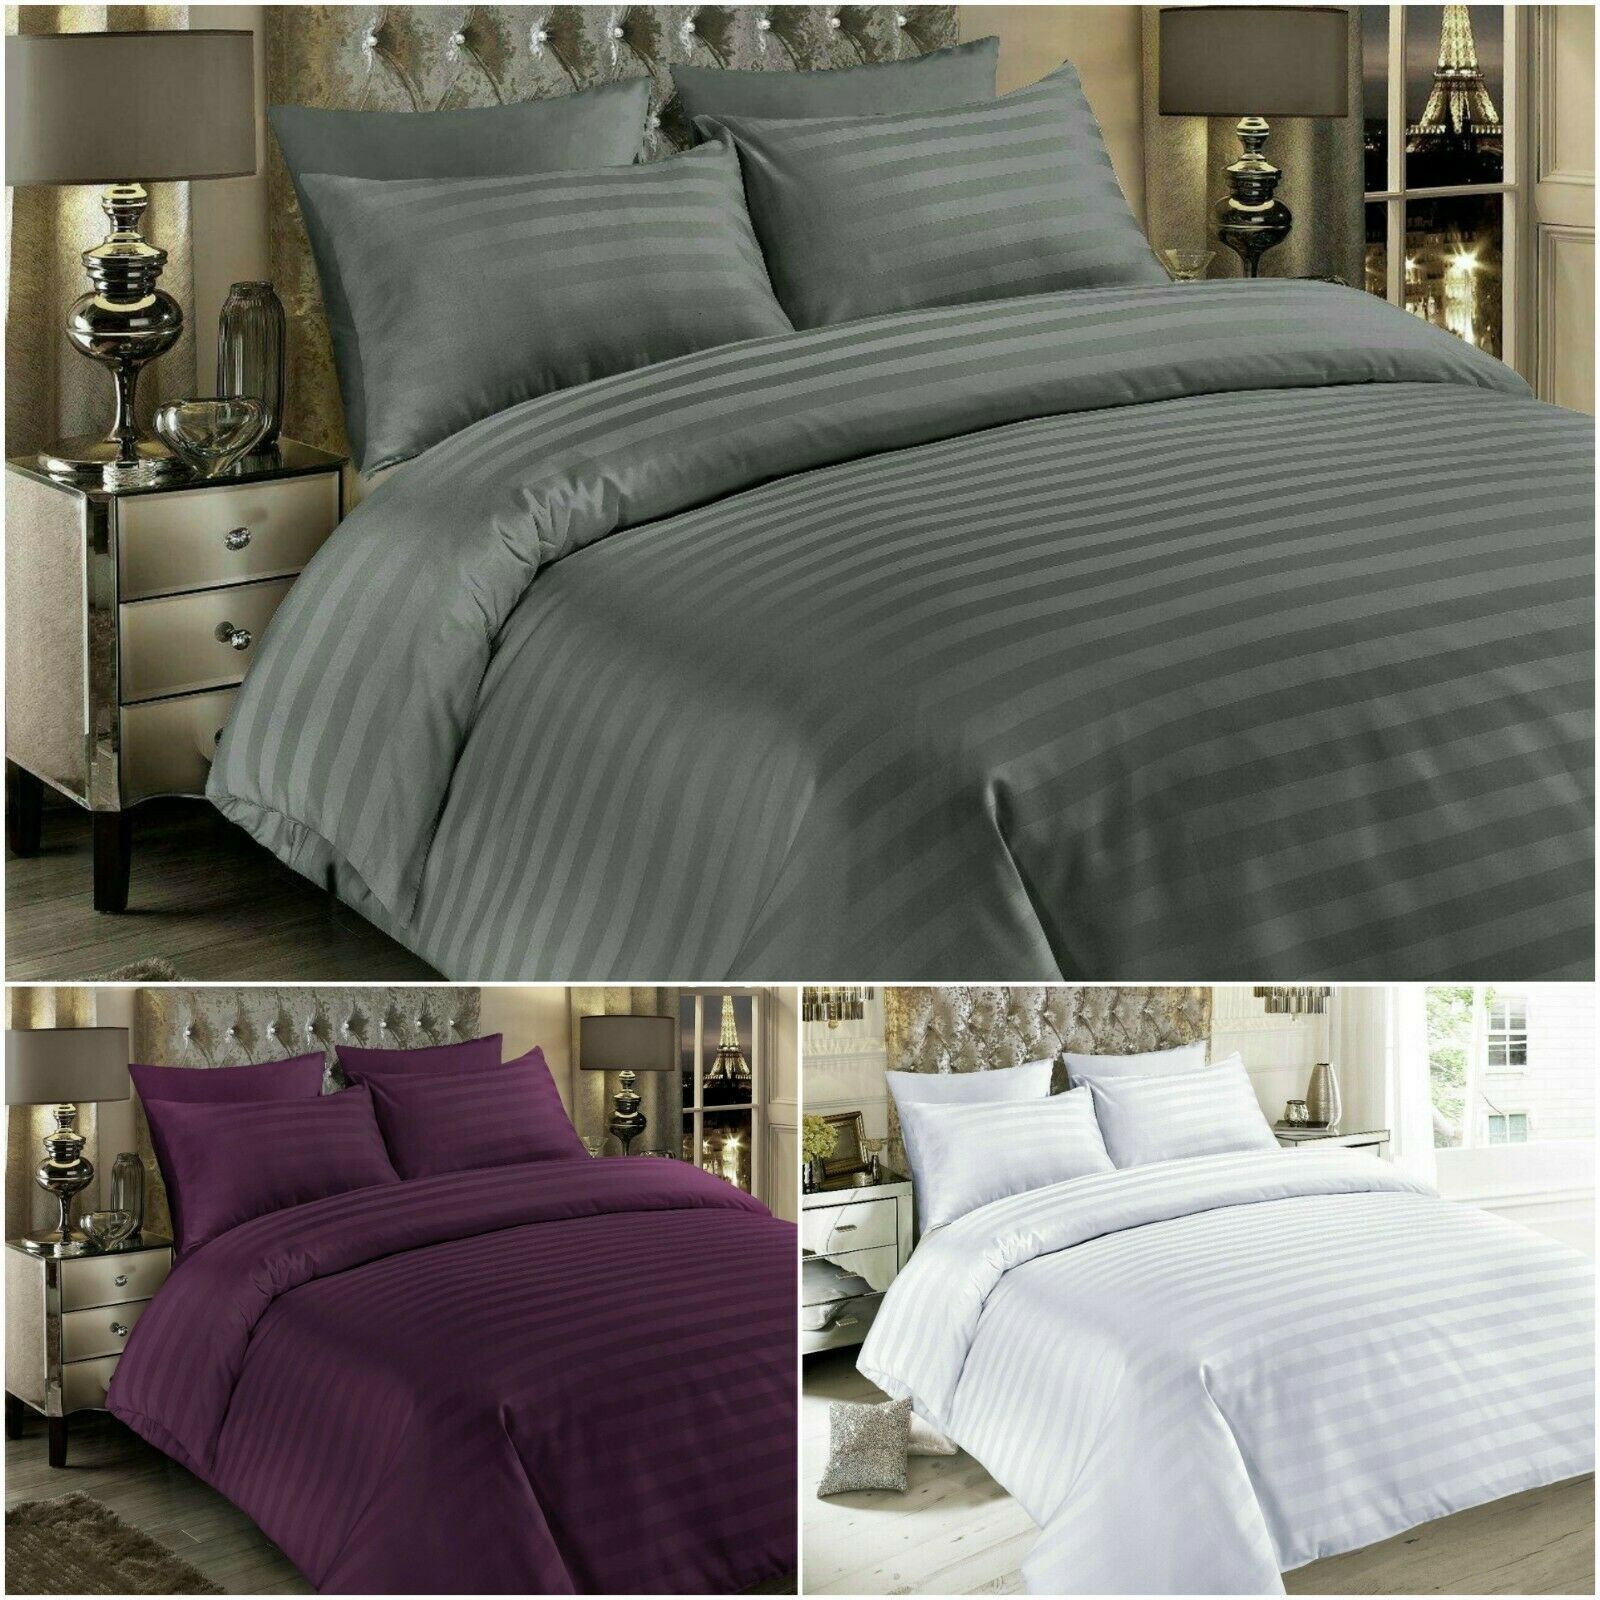 Asda George 100 Egyptian Cotton Luxury Duvet Set King Size Fast Courier Post For Sale Ebay